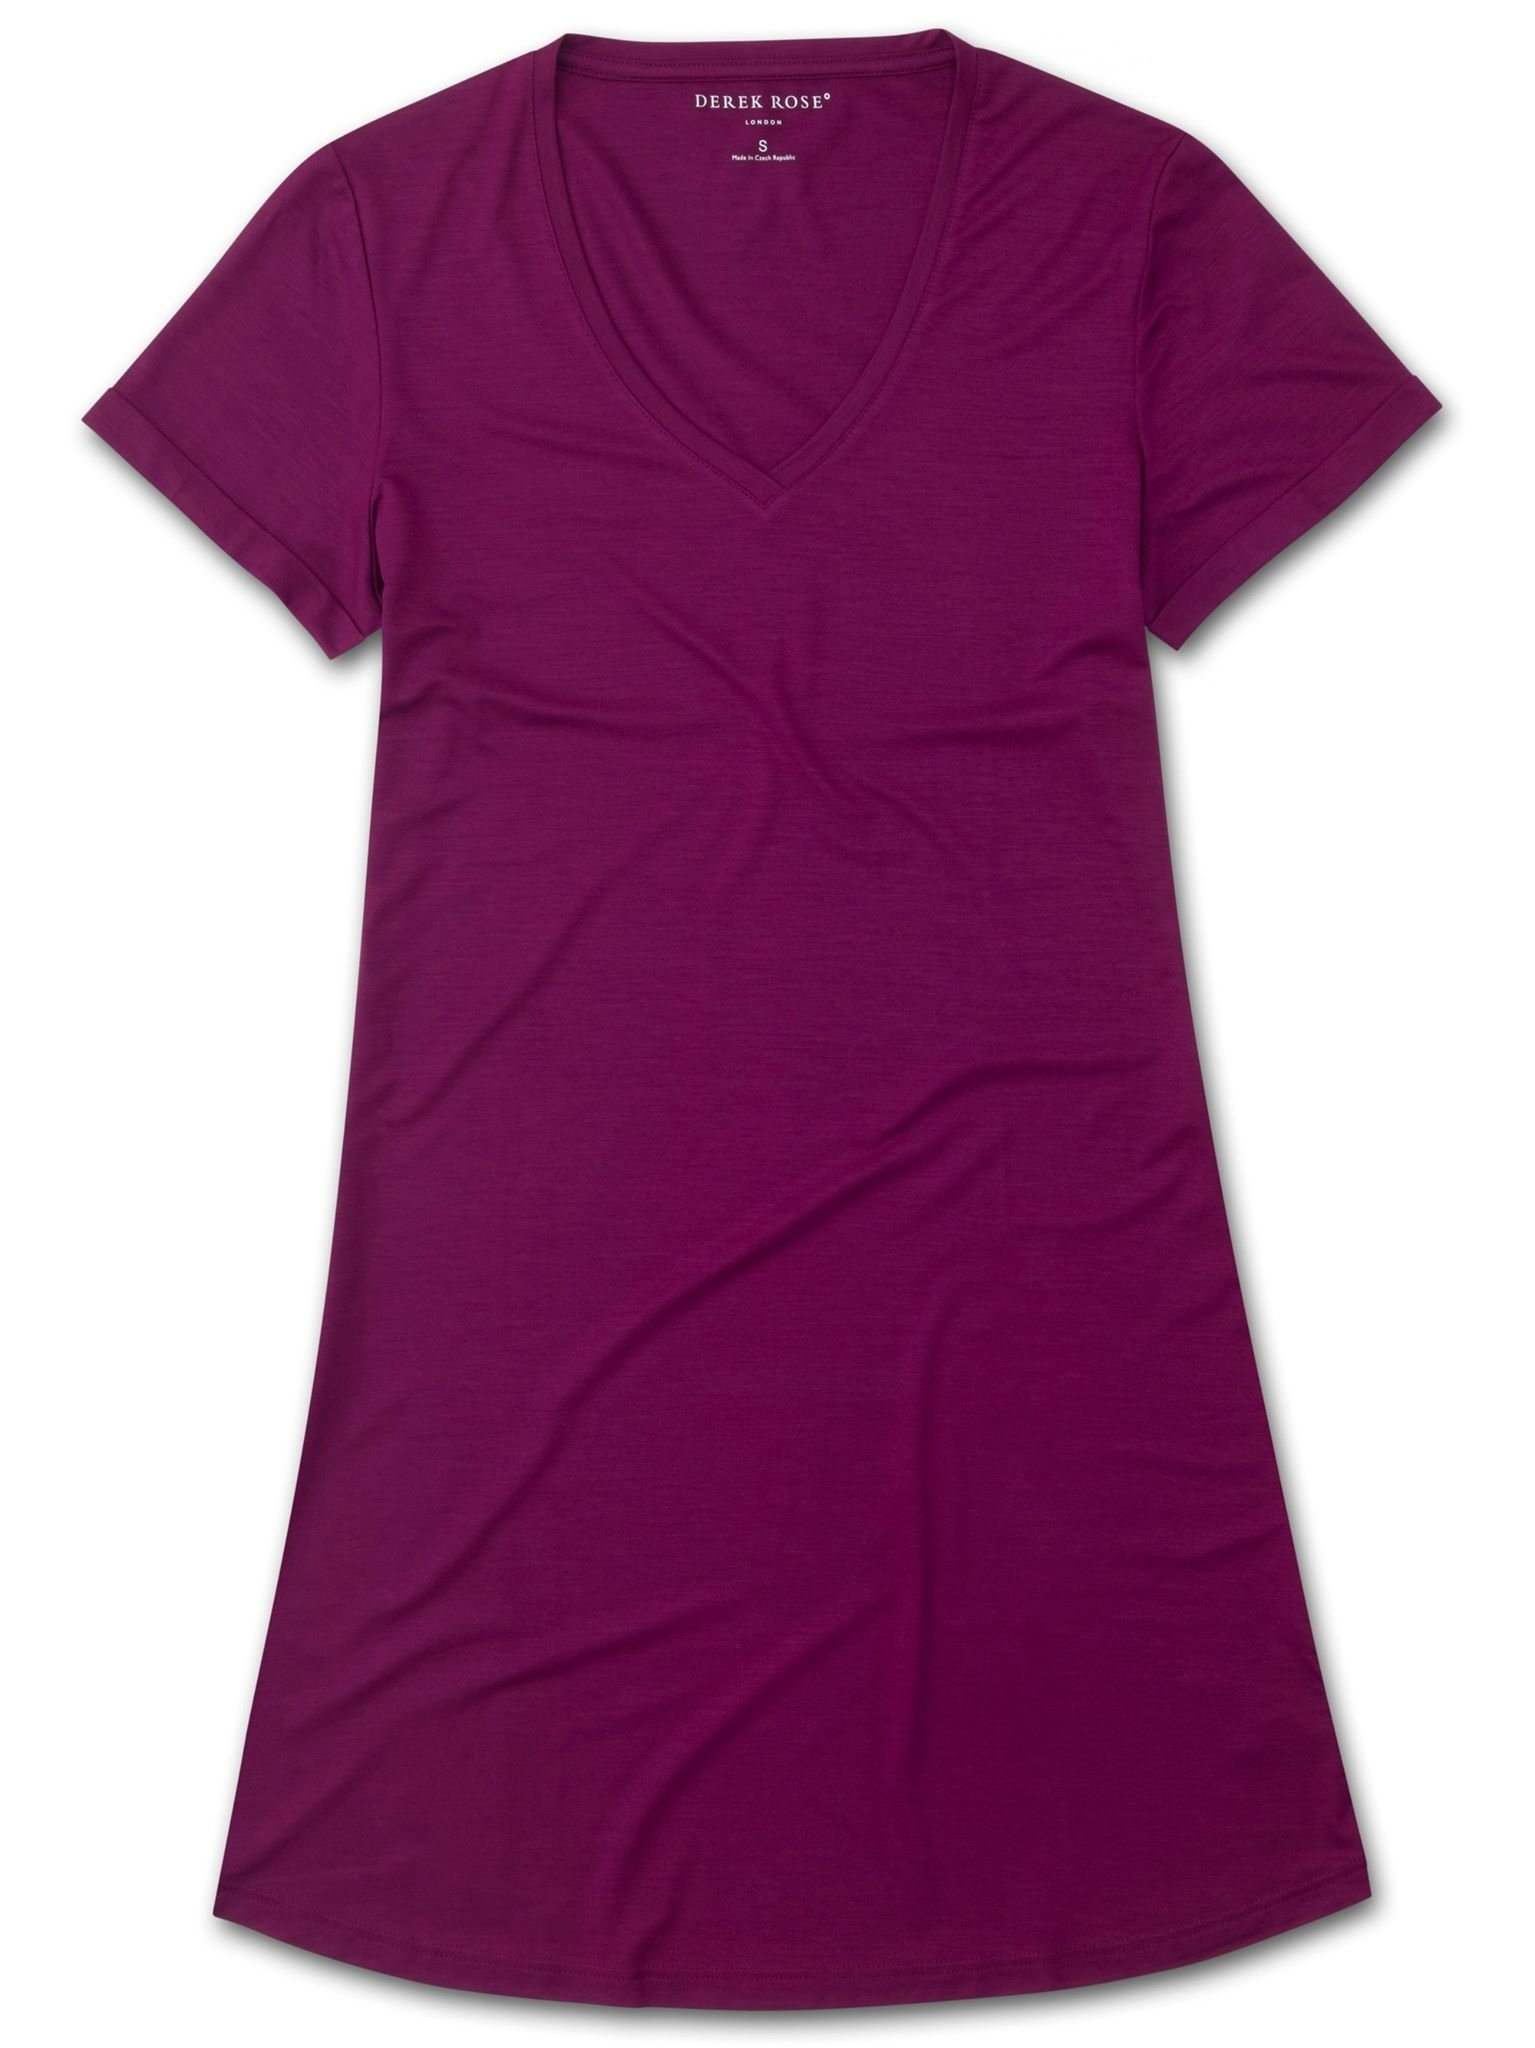 Women's V-Neck Sleep T-Shirt Lara Micro Modal Stretch Berry